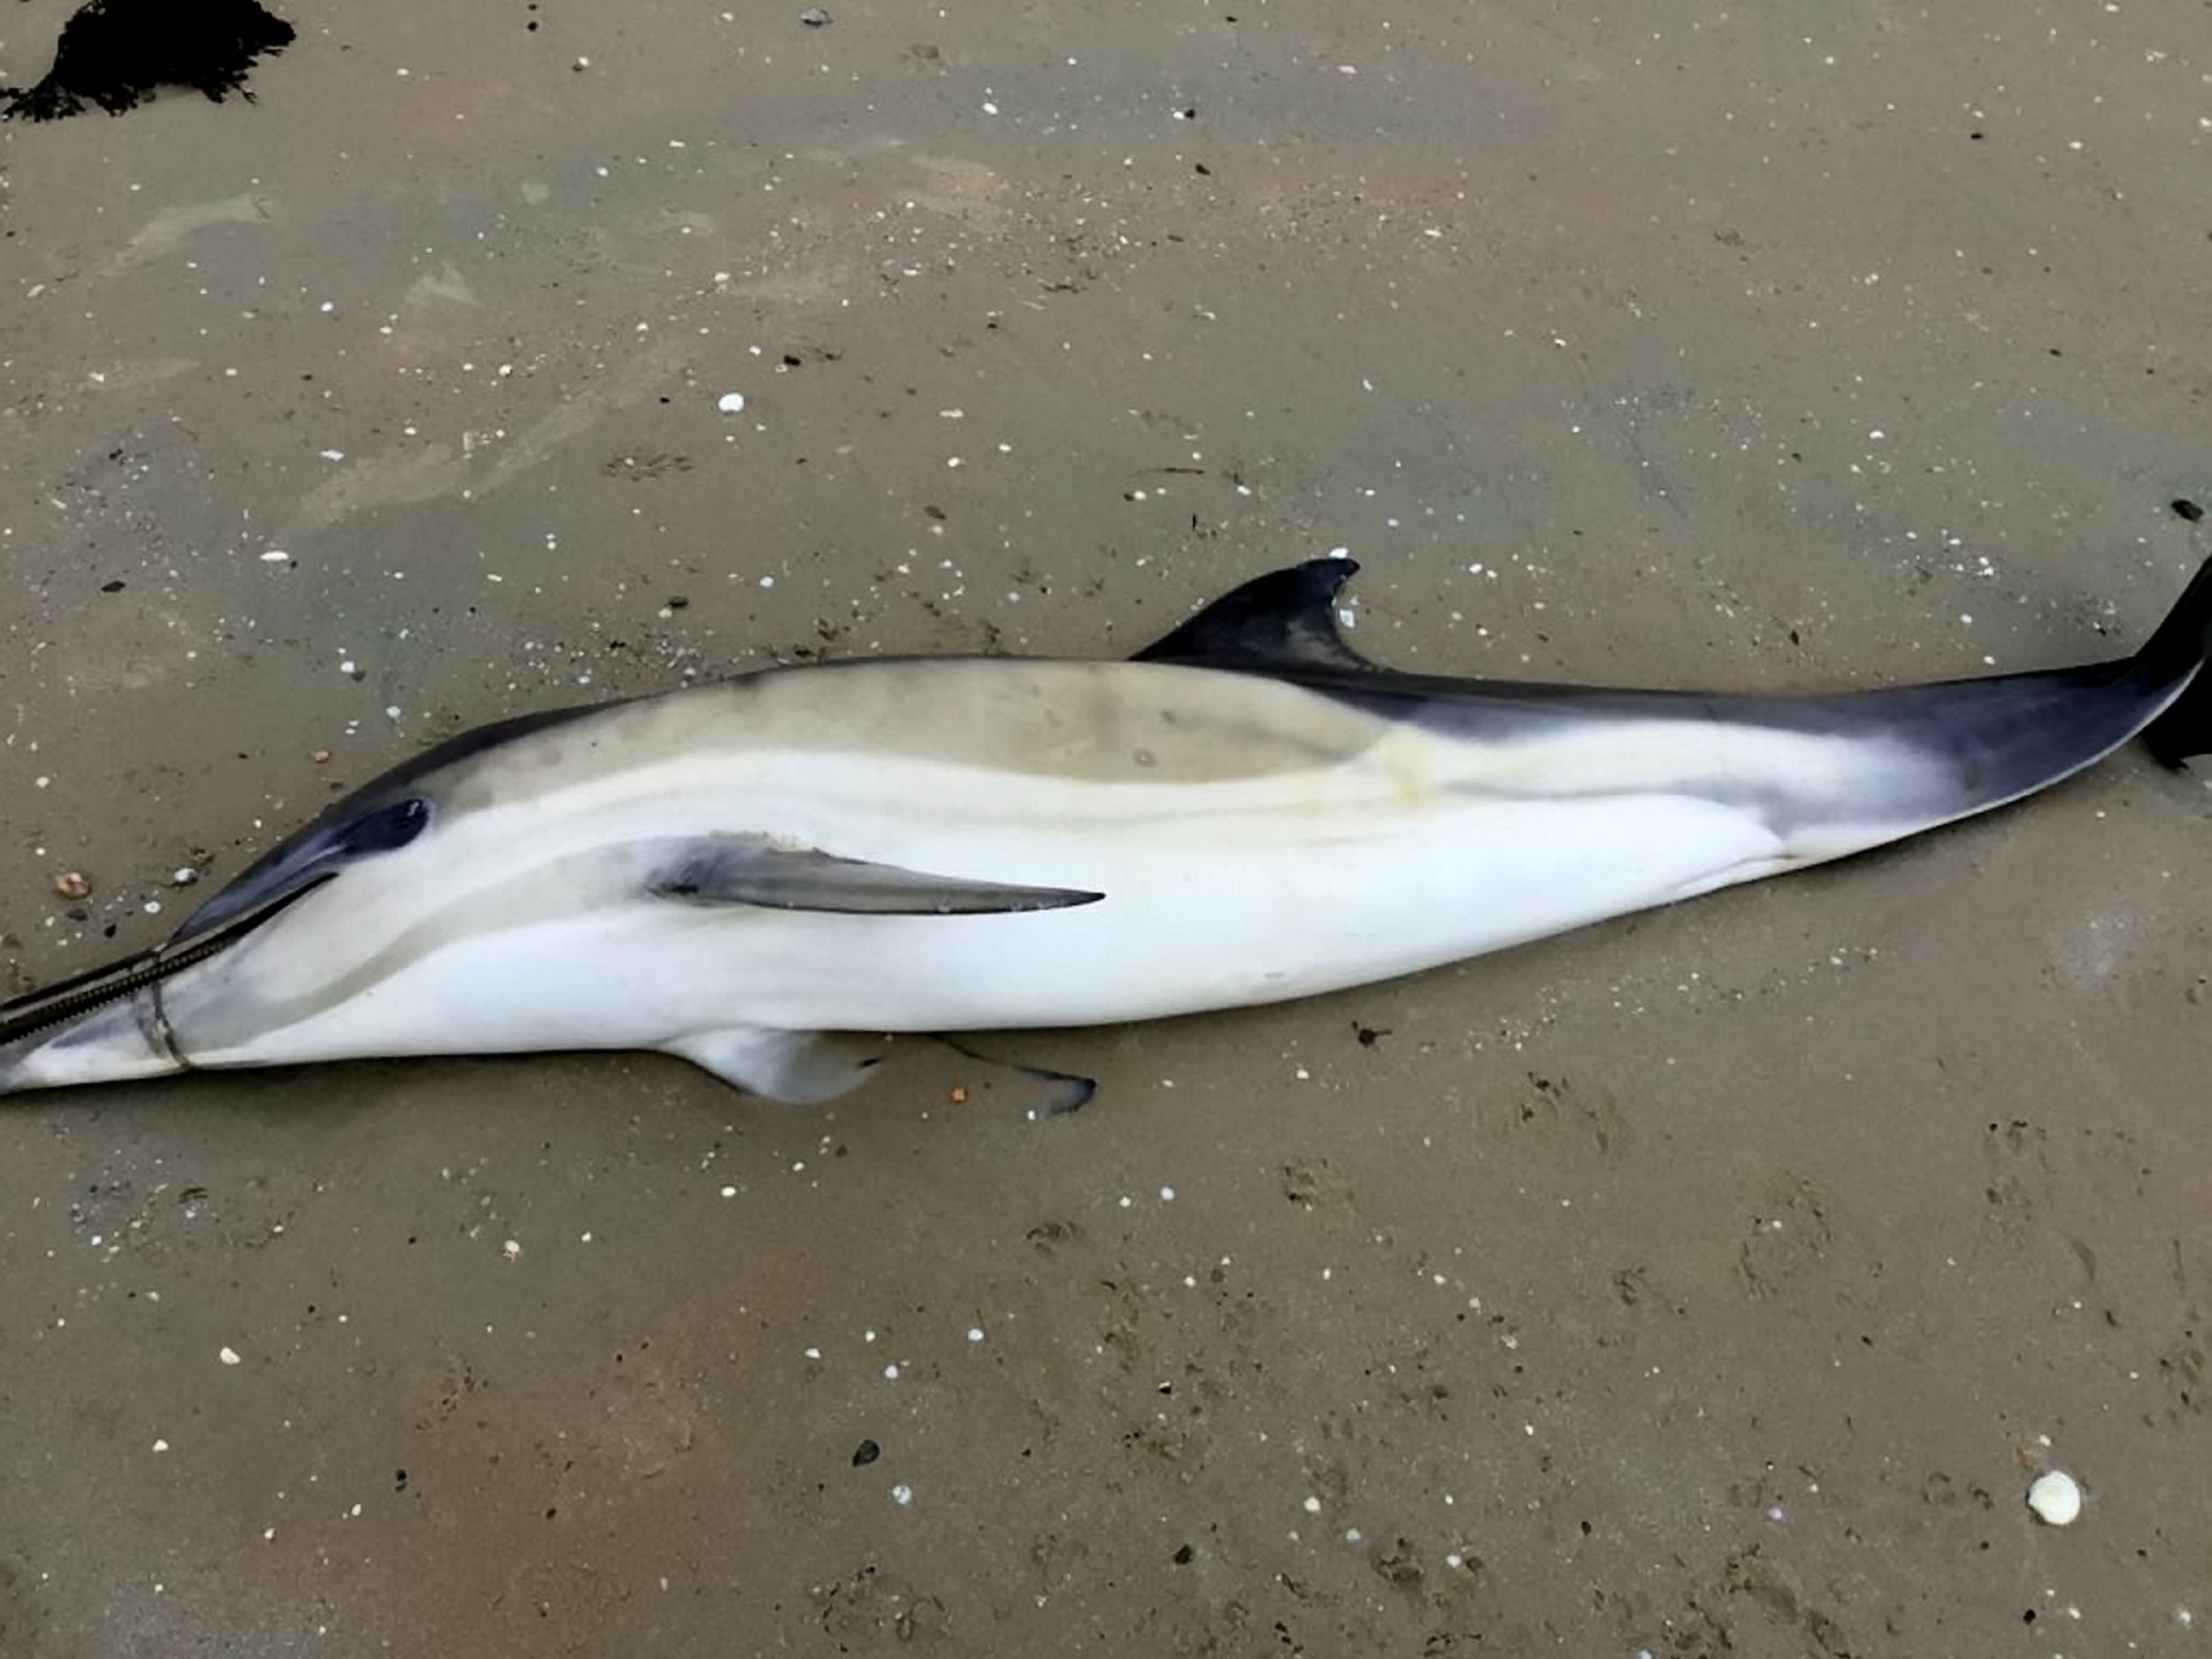 The shocking image of a dolphin washed up behind the Royal Channel Islands Yacht Club with plastic waste wrapped around its beak. Jersey, Channel Islands.See SWNS story SWPLdolphin.This shocking picture shows a dolphin that washed up on a British beach with plastic waste wrapped around its beak.The animal was found by Sandra Hilton who took this image before reporting the find to the relevant authorities.But officers from Jersey's States? Fisheries and Marine Resources Department have not been able to located the dolphin.They said the dolphin, which looked 'emaciated' was tagged - and have now urged islanders to keep a lookout.